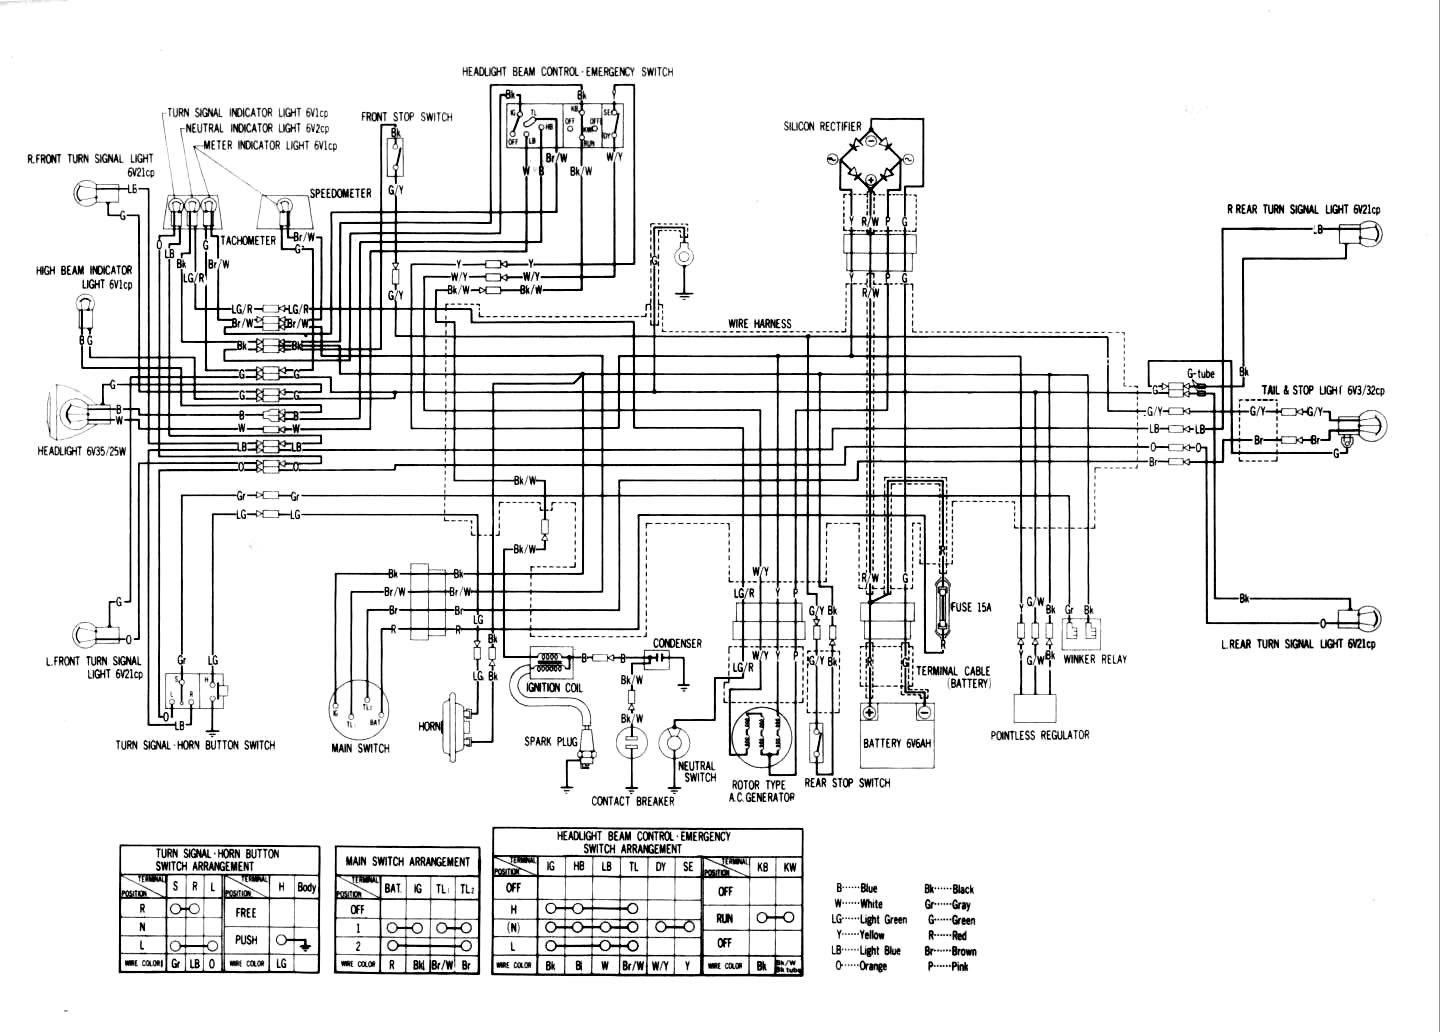 [WRG-8579] Wiring Diagram Honda Wave 125